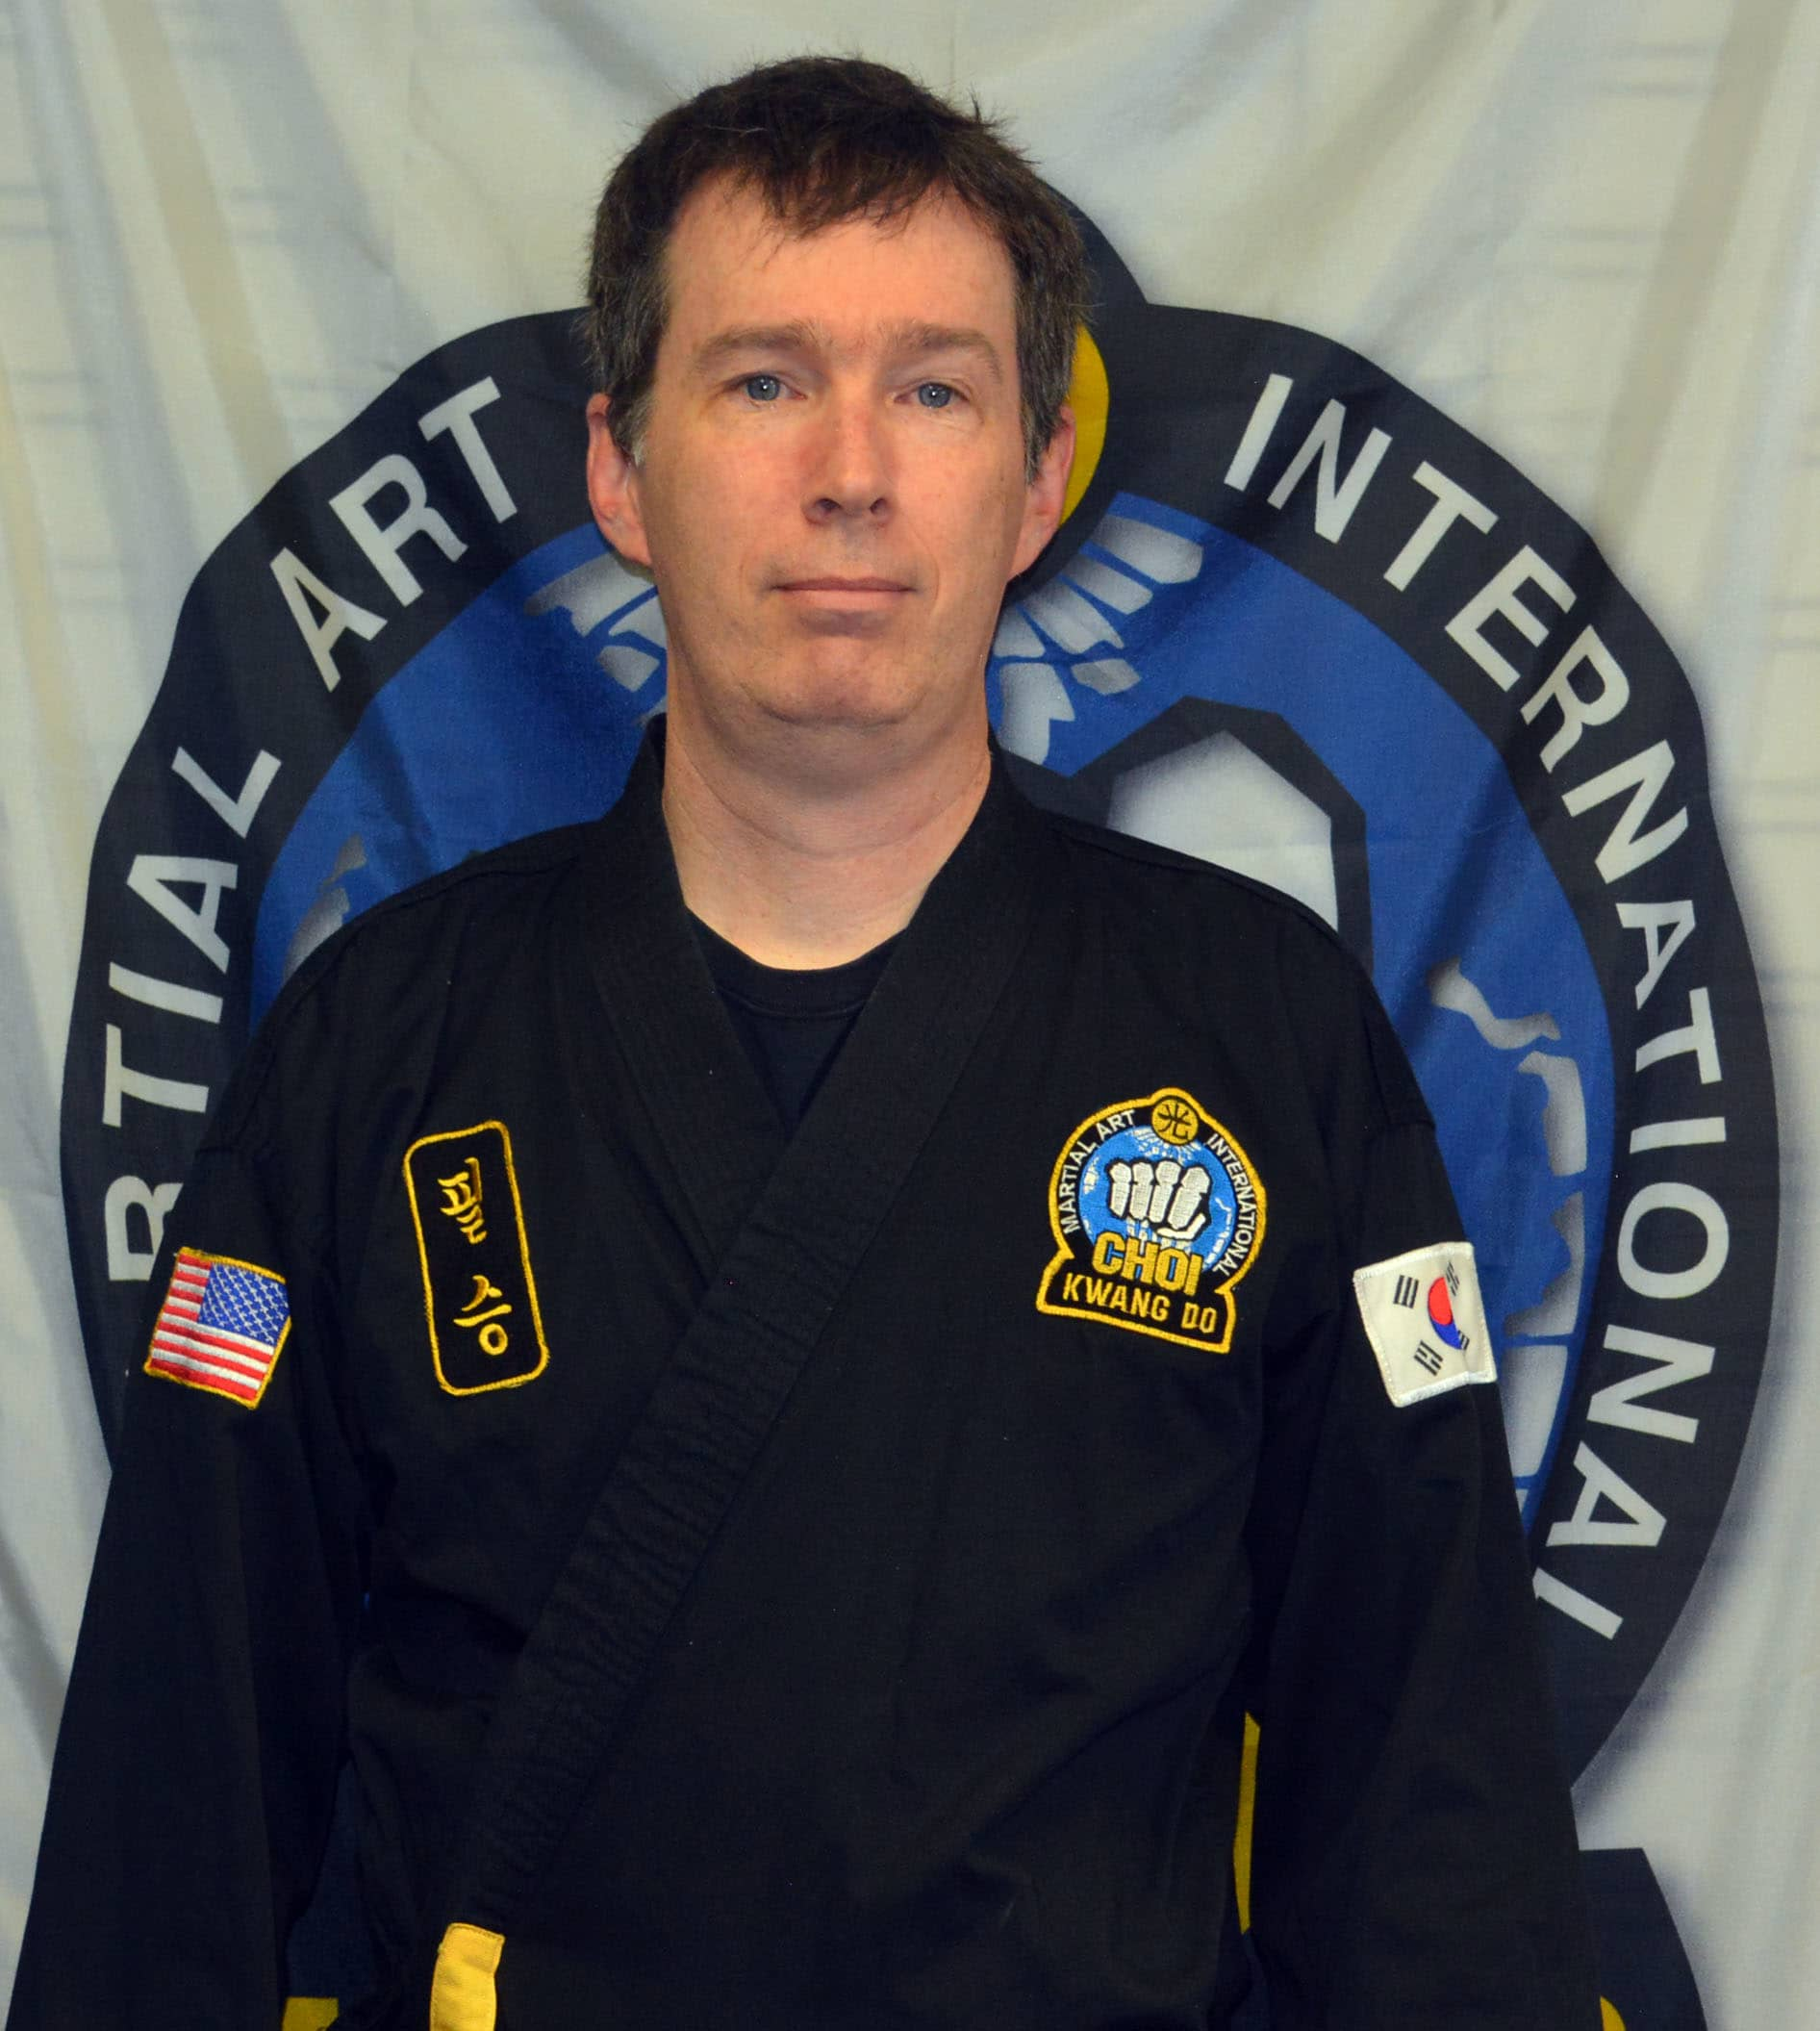 Deputy Master David Carriker in Kennesaw - CKD Martial Arts Of Kennesaw